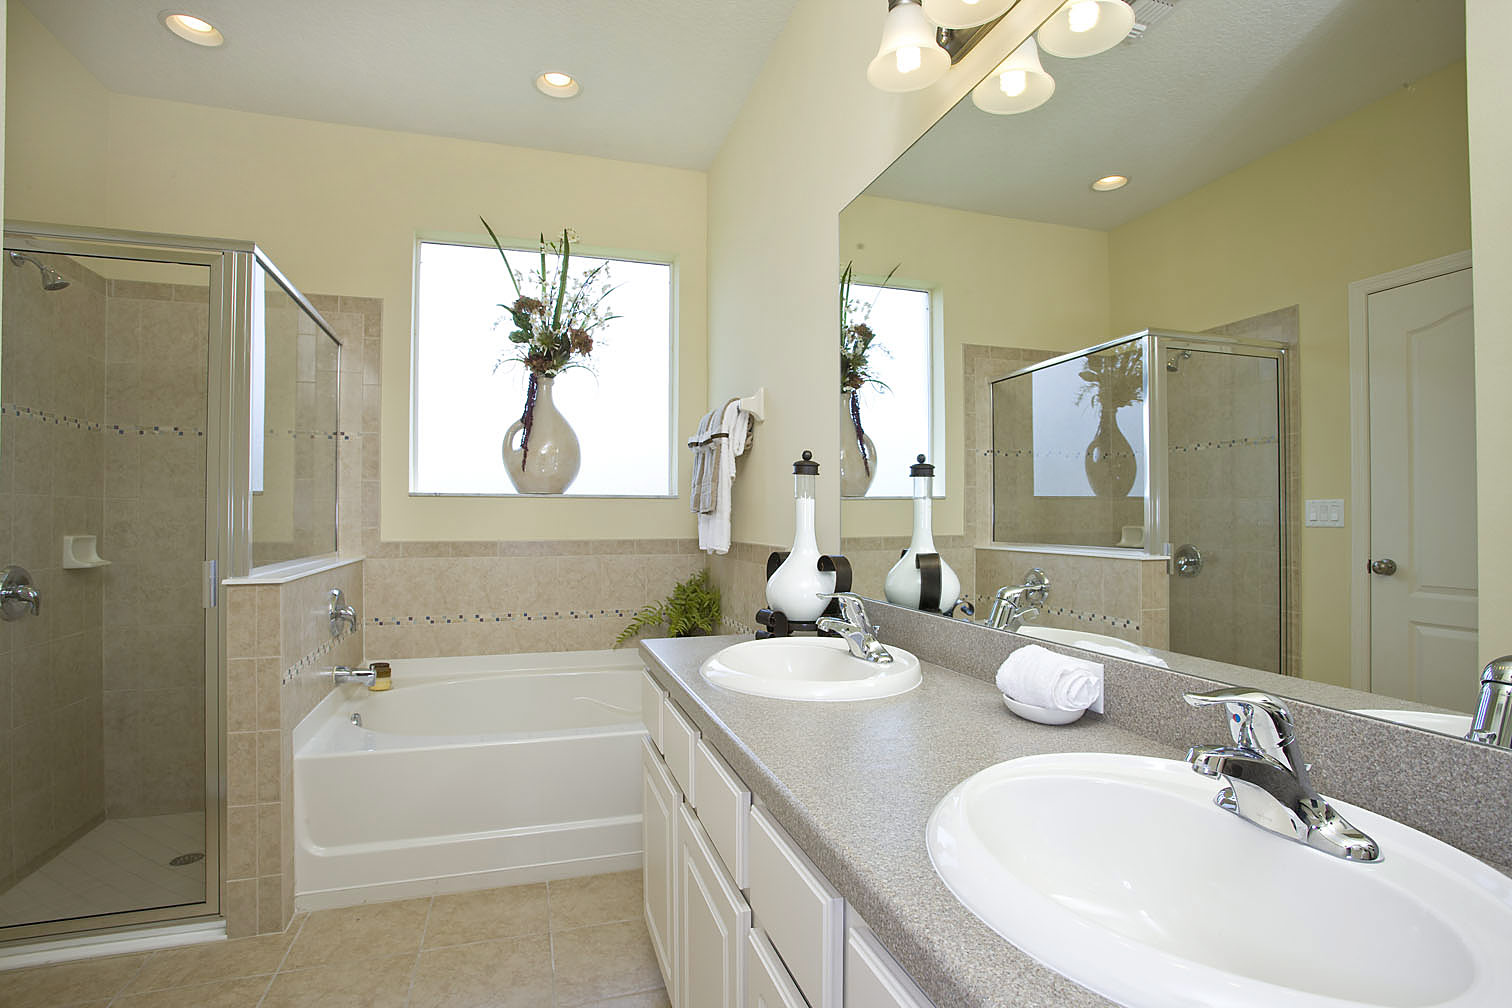 How To Clean A Bathroom Large And Beautiful Photos Photo To Select How To Clean A Bathroom